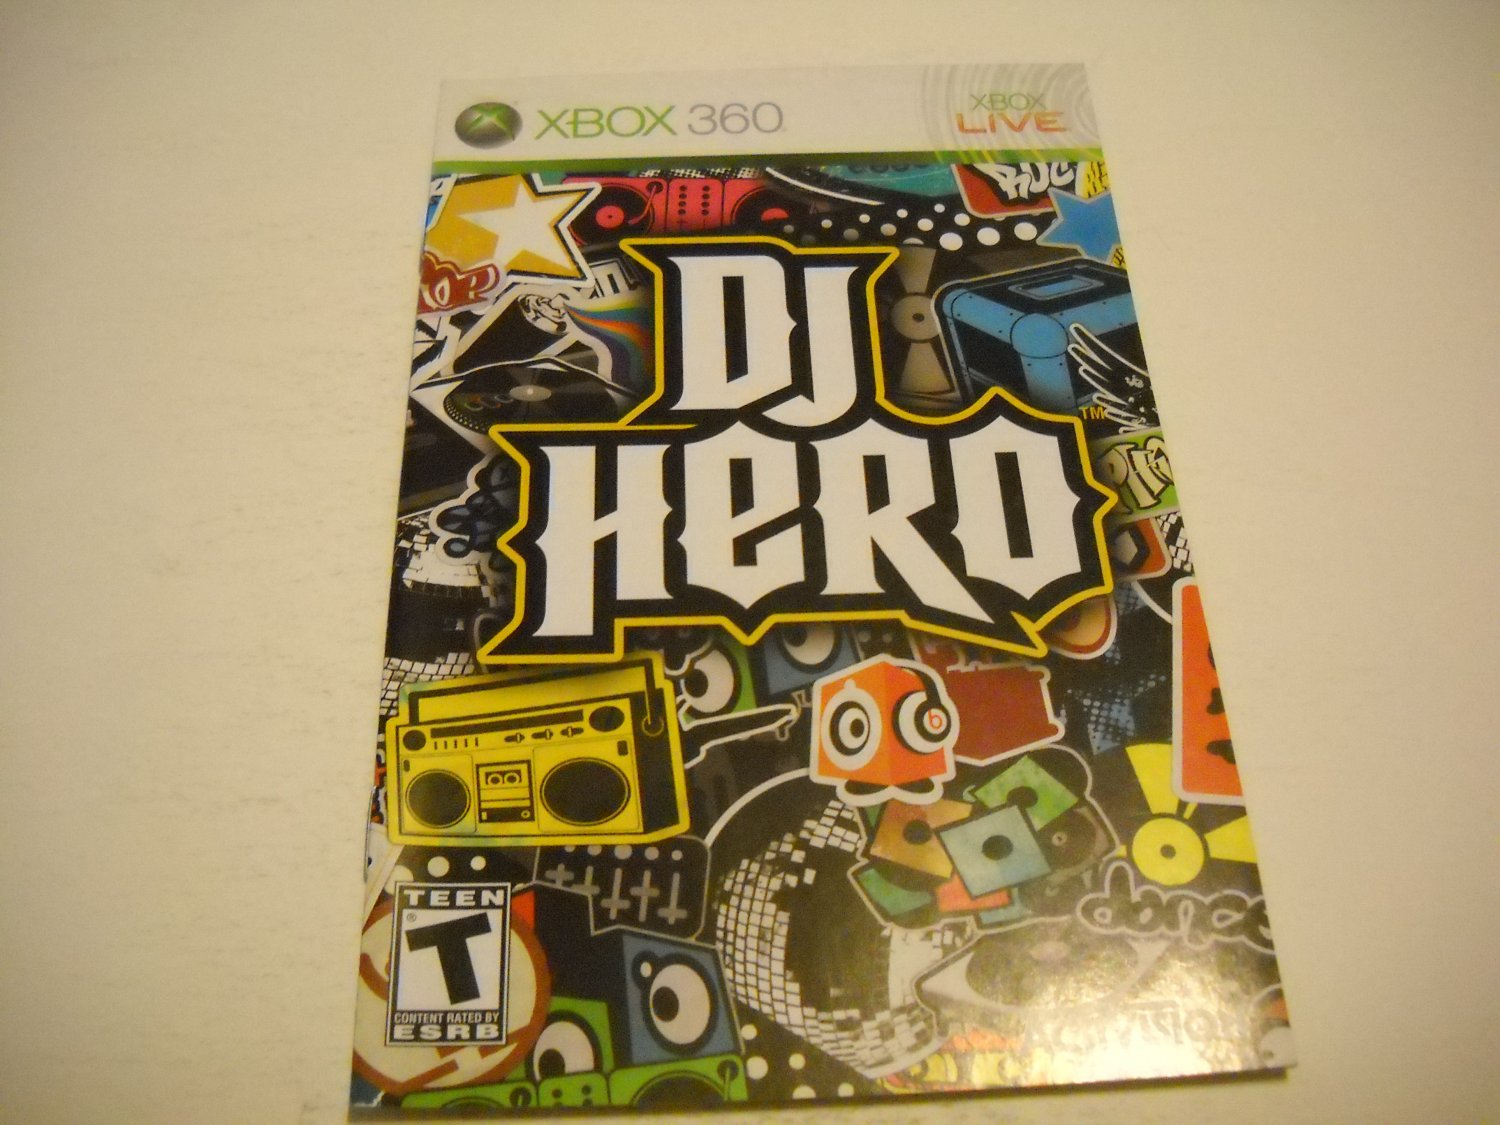 Manual ONLY ~  for DJ Hero   - Xbox 360 Instruction Booklet